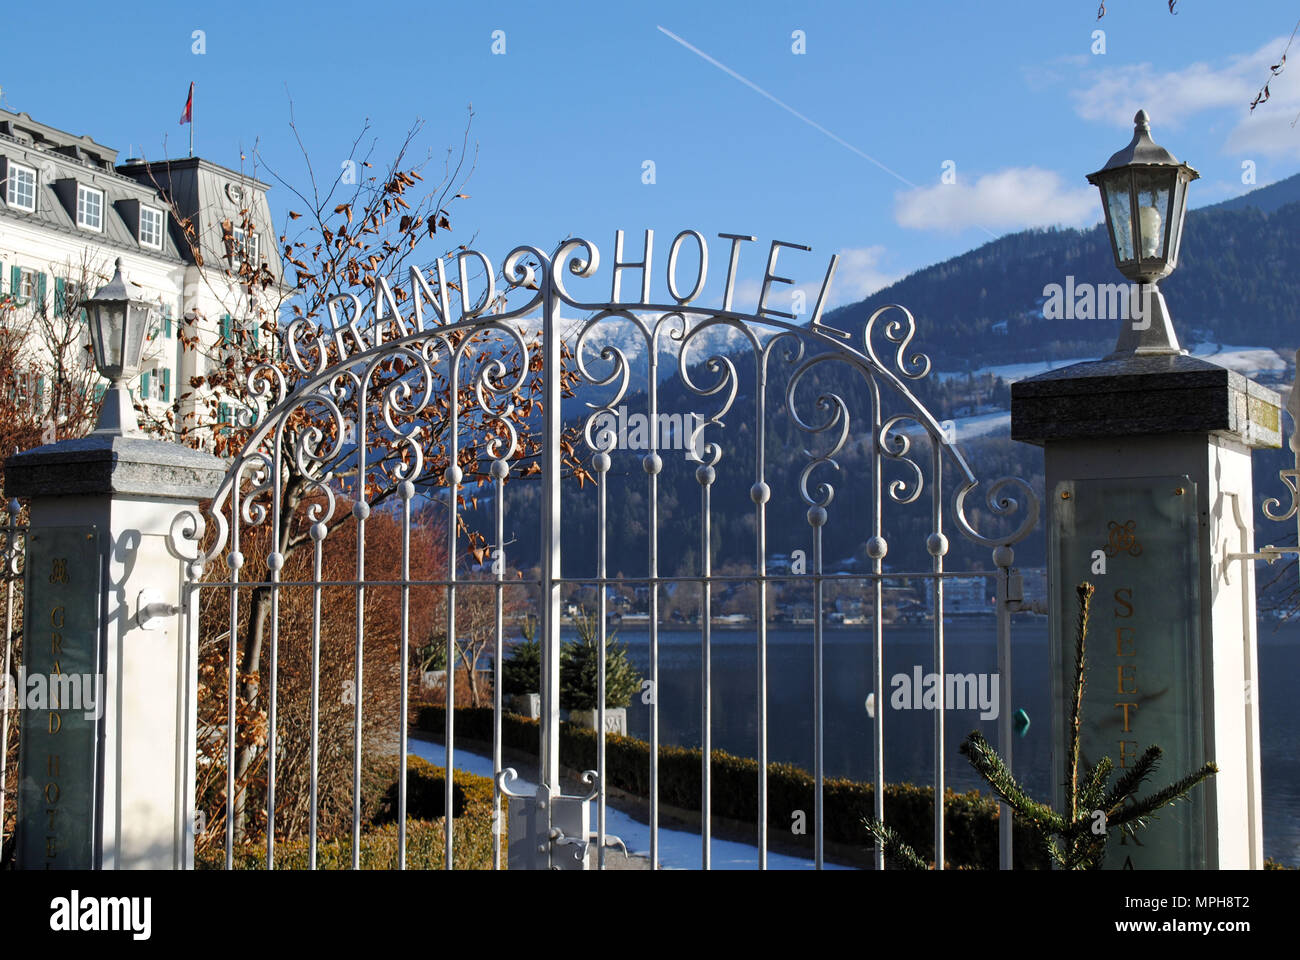 The wrought iron entrance gate of the Grand Hotel in Zell am See, Austria. Stock Photo